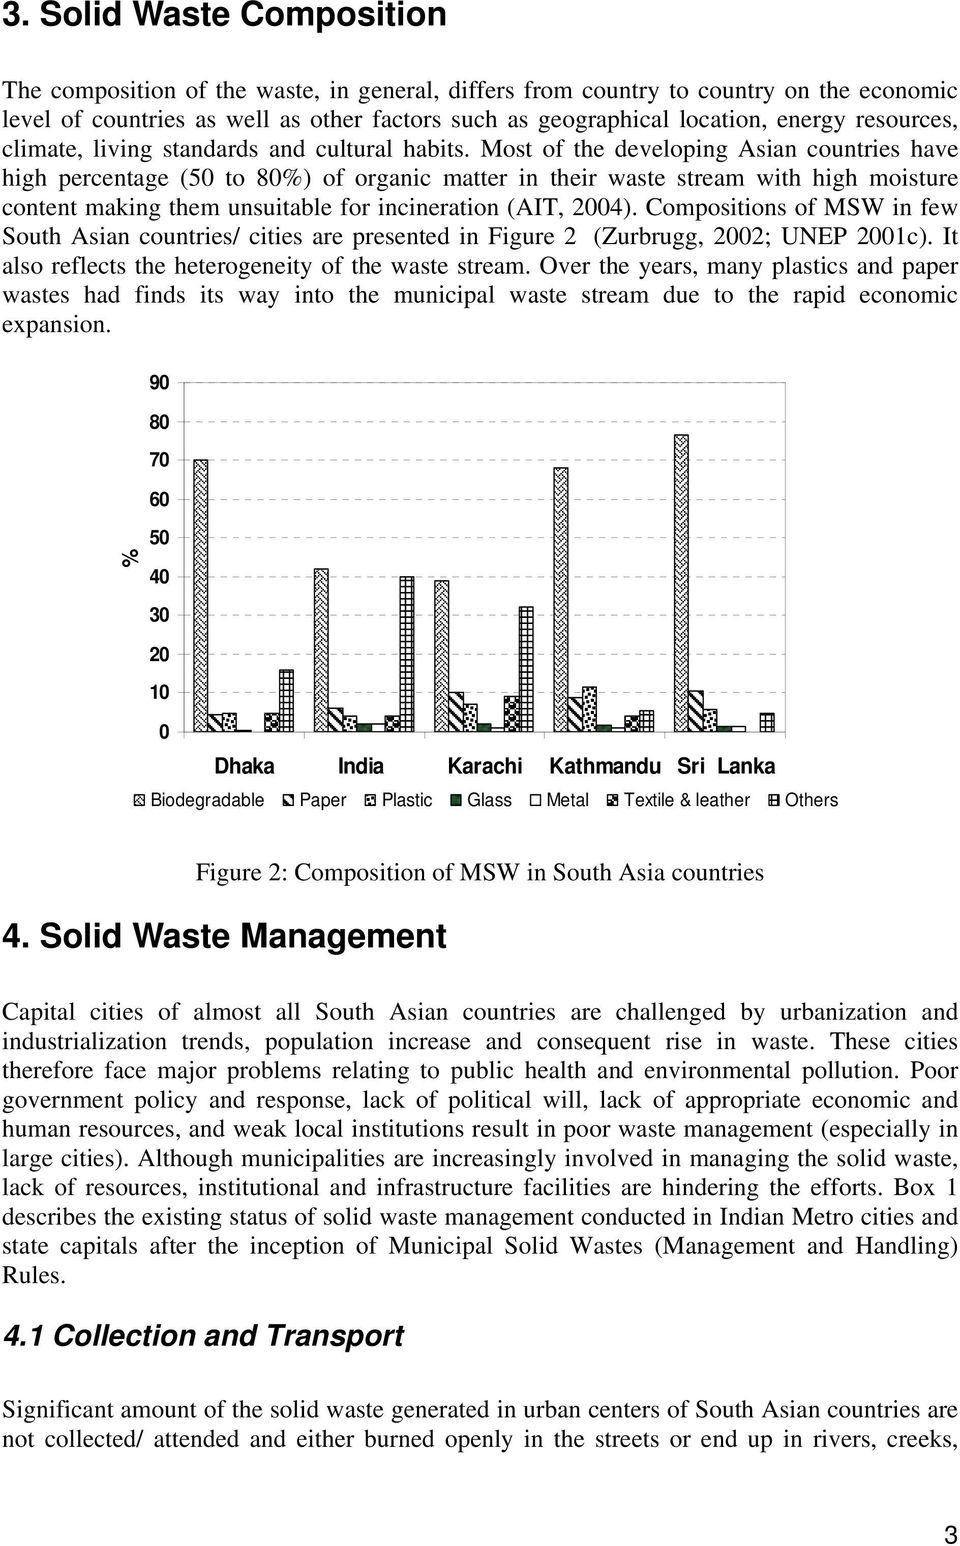 Most of the developing Asian countries have high percentage (50 to 80%) of organic matter in their waste stream with high moisture content making them unsuitable for incineration (AIT, 2004).